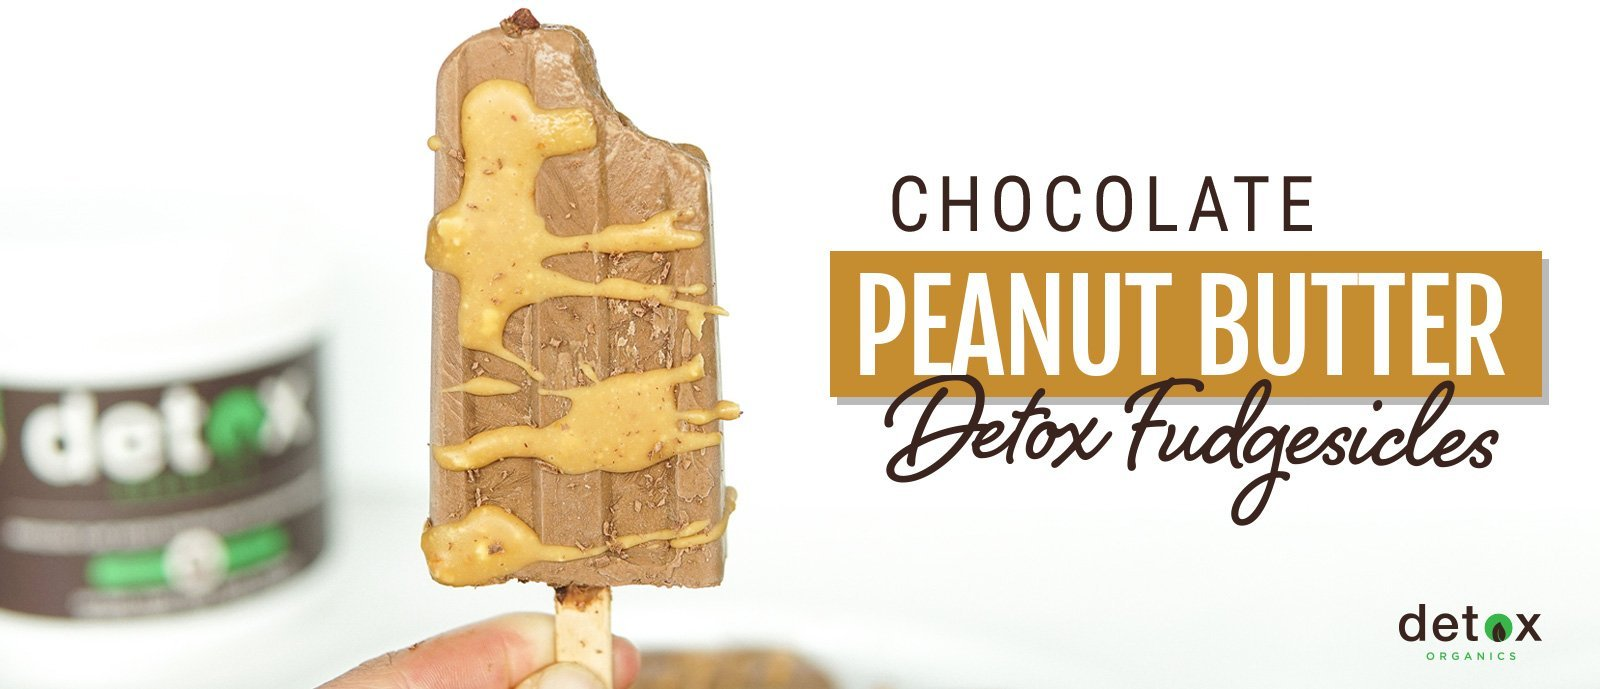 Chocolate PB Detox Fudgesicles